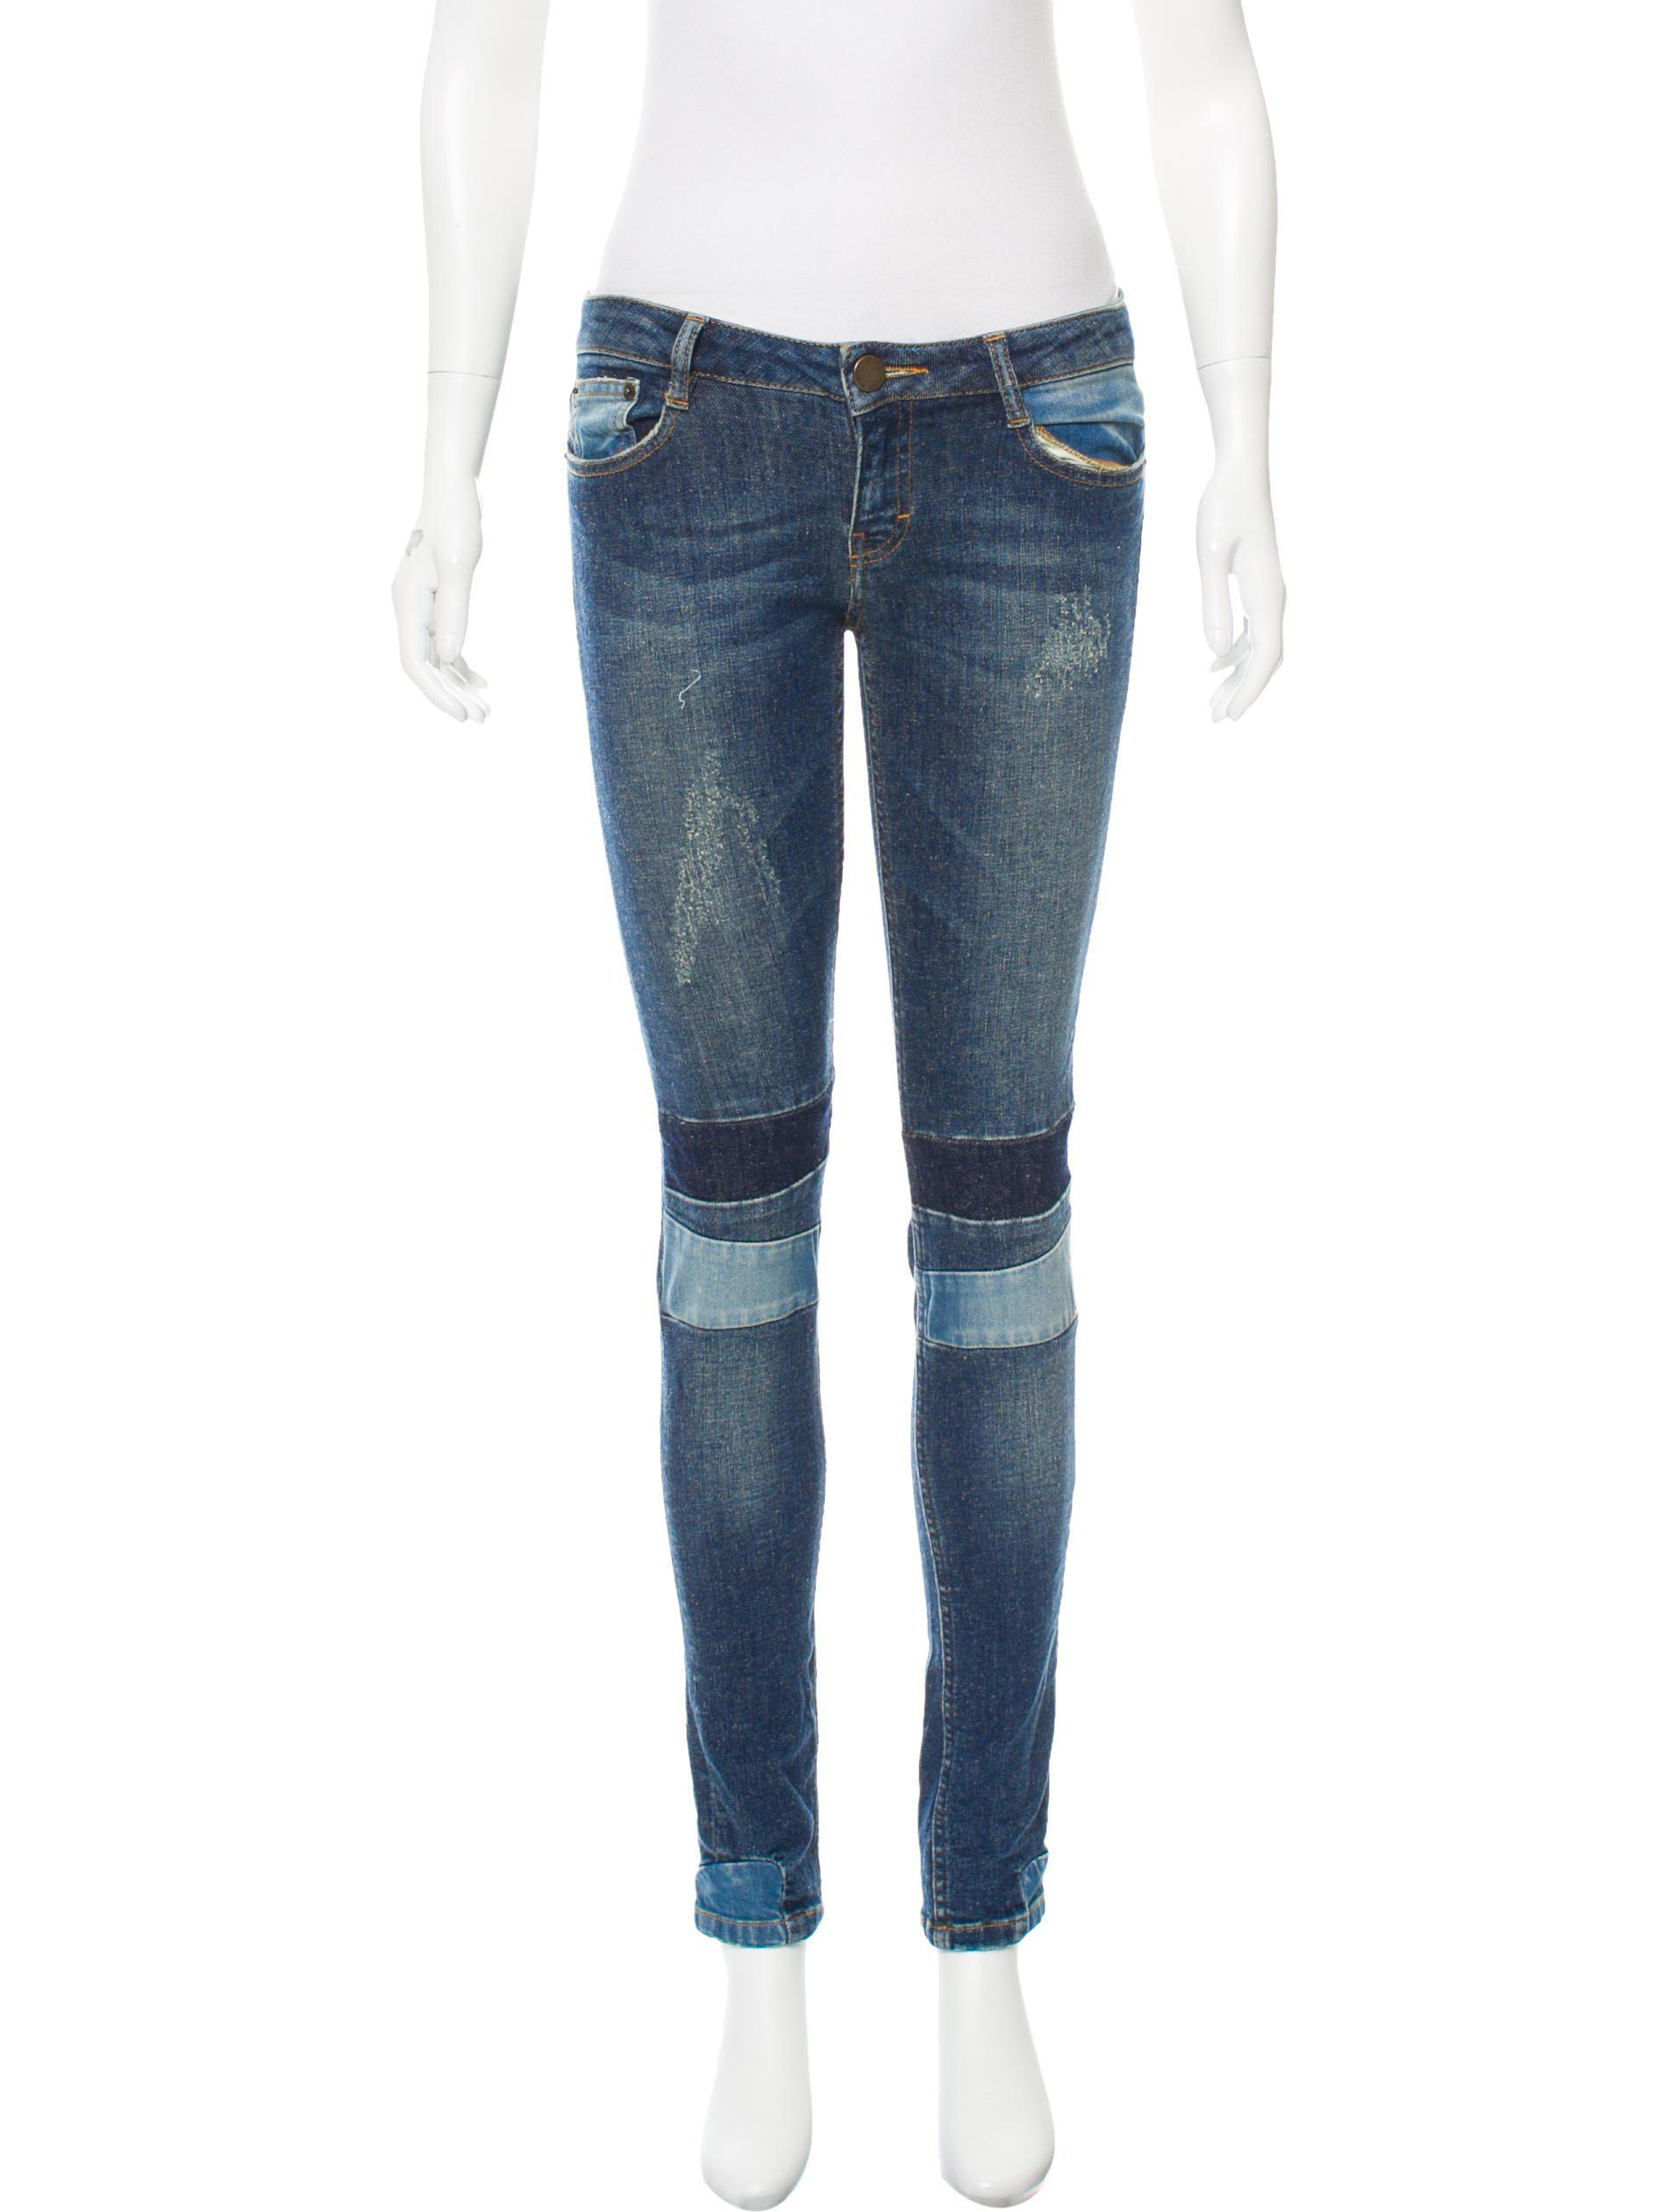 76a3599395a7 Lyst - Maje Distressed Low-rise Jeans in Blue